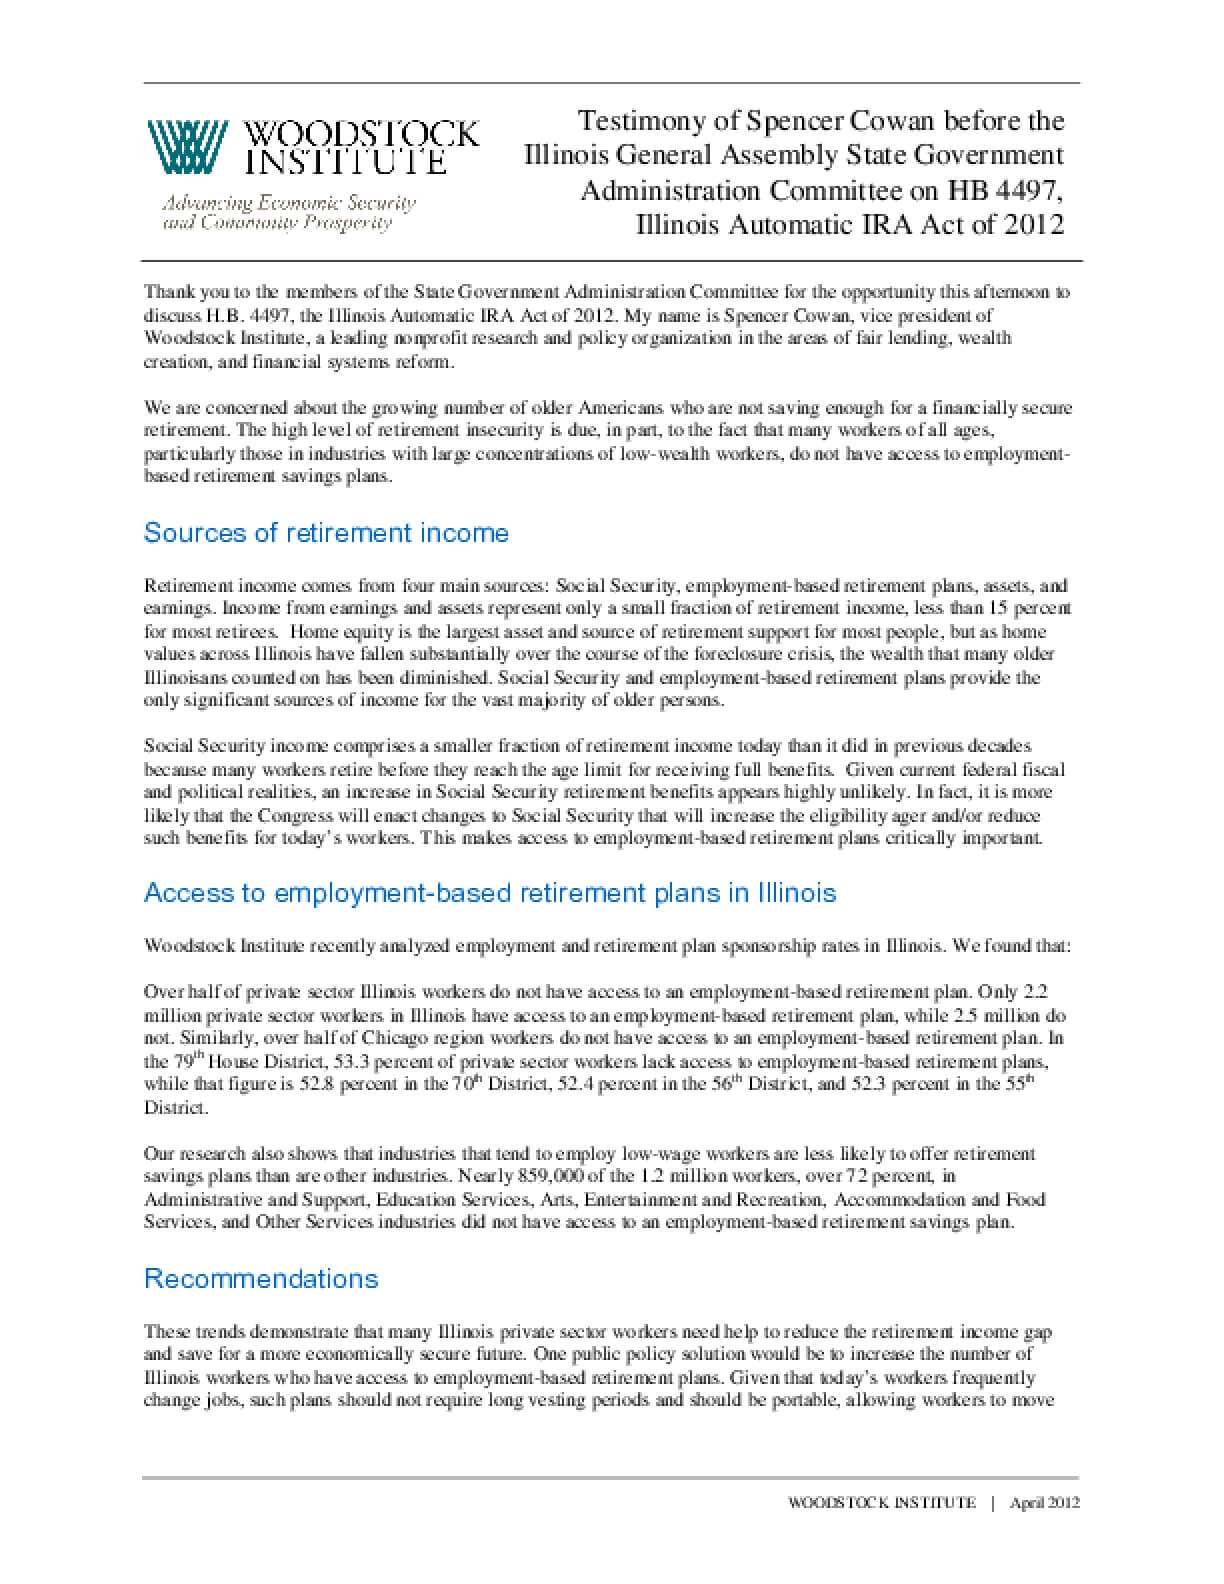 Testimony of Spencer Cowan before the Illinois General Assembly State Government Administration Committee on HB 4497, Illinois Automatic IRA Act of 2012